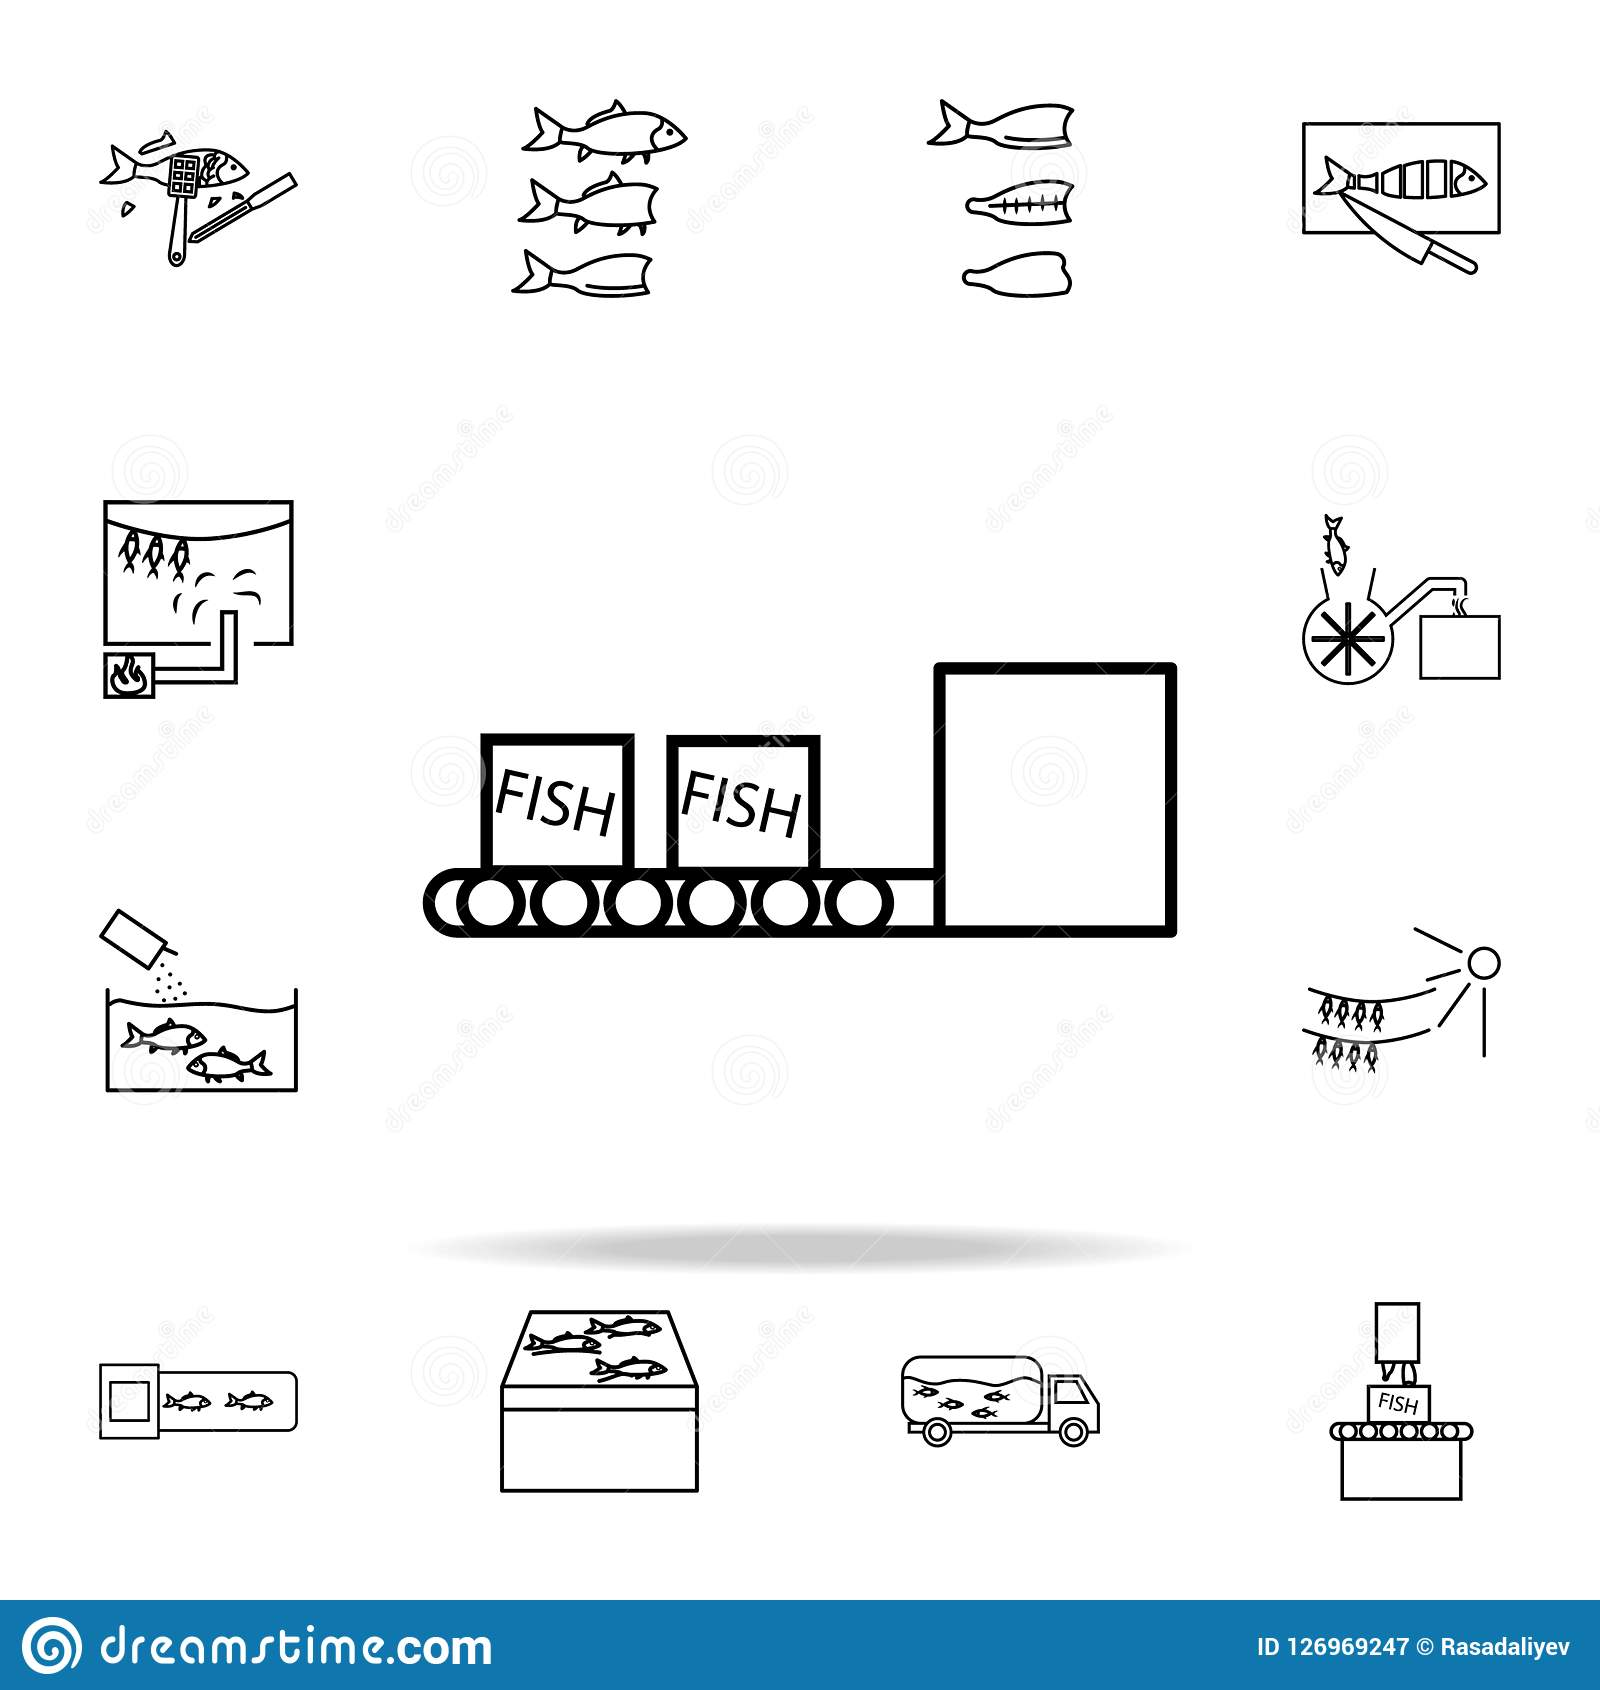 hight resolution of fish boxes on conveyor belt icon fish production icons universal set for web and mobile